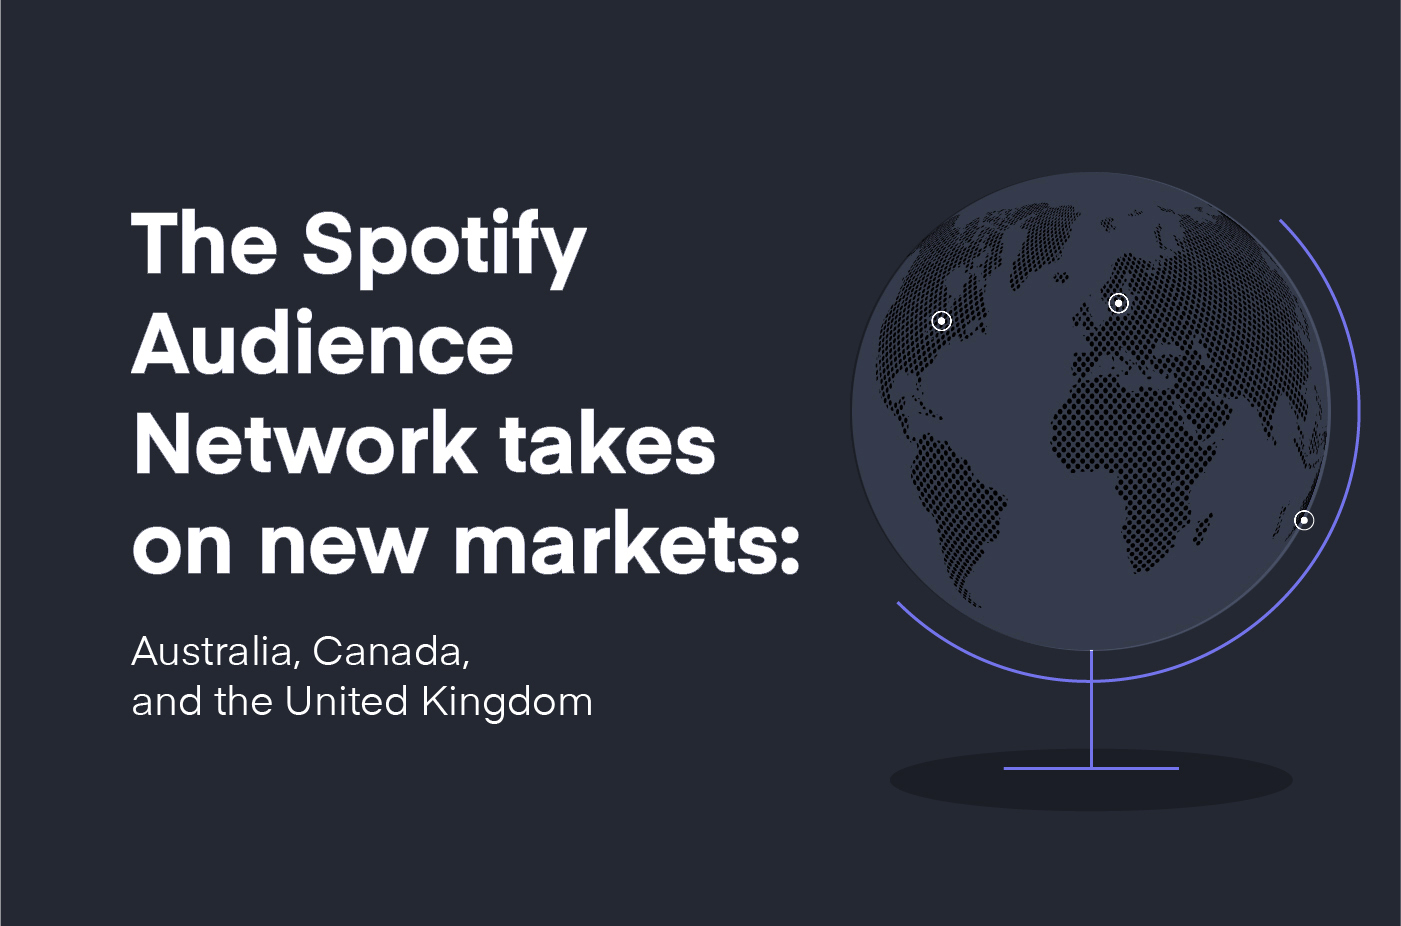 The Spotify Audience Network takes on new markets: Australia, Canada, and the United Kingdom